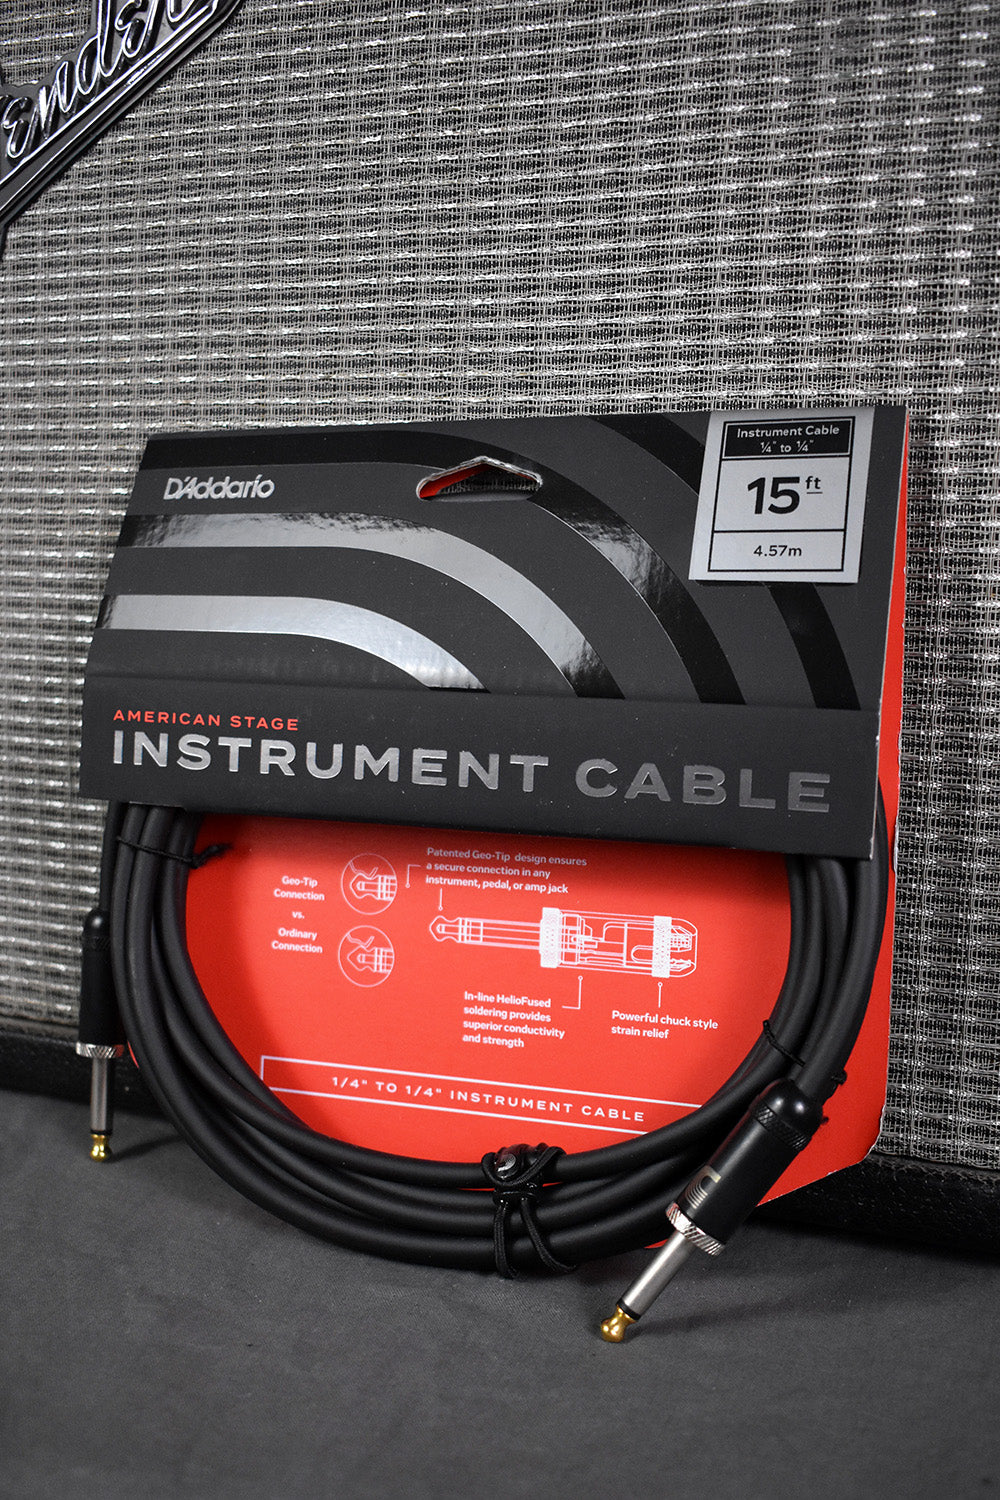 Planet Waves American Stage Instrument Cable 15 ft Guitar Cord PW-AMSG-15